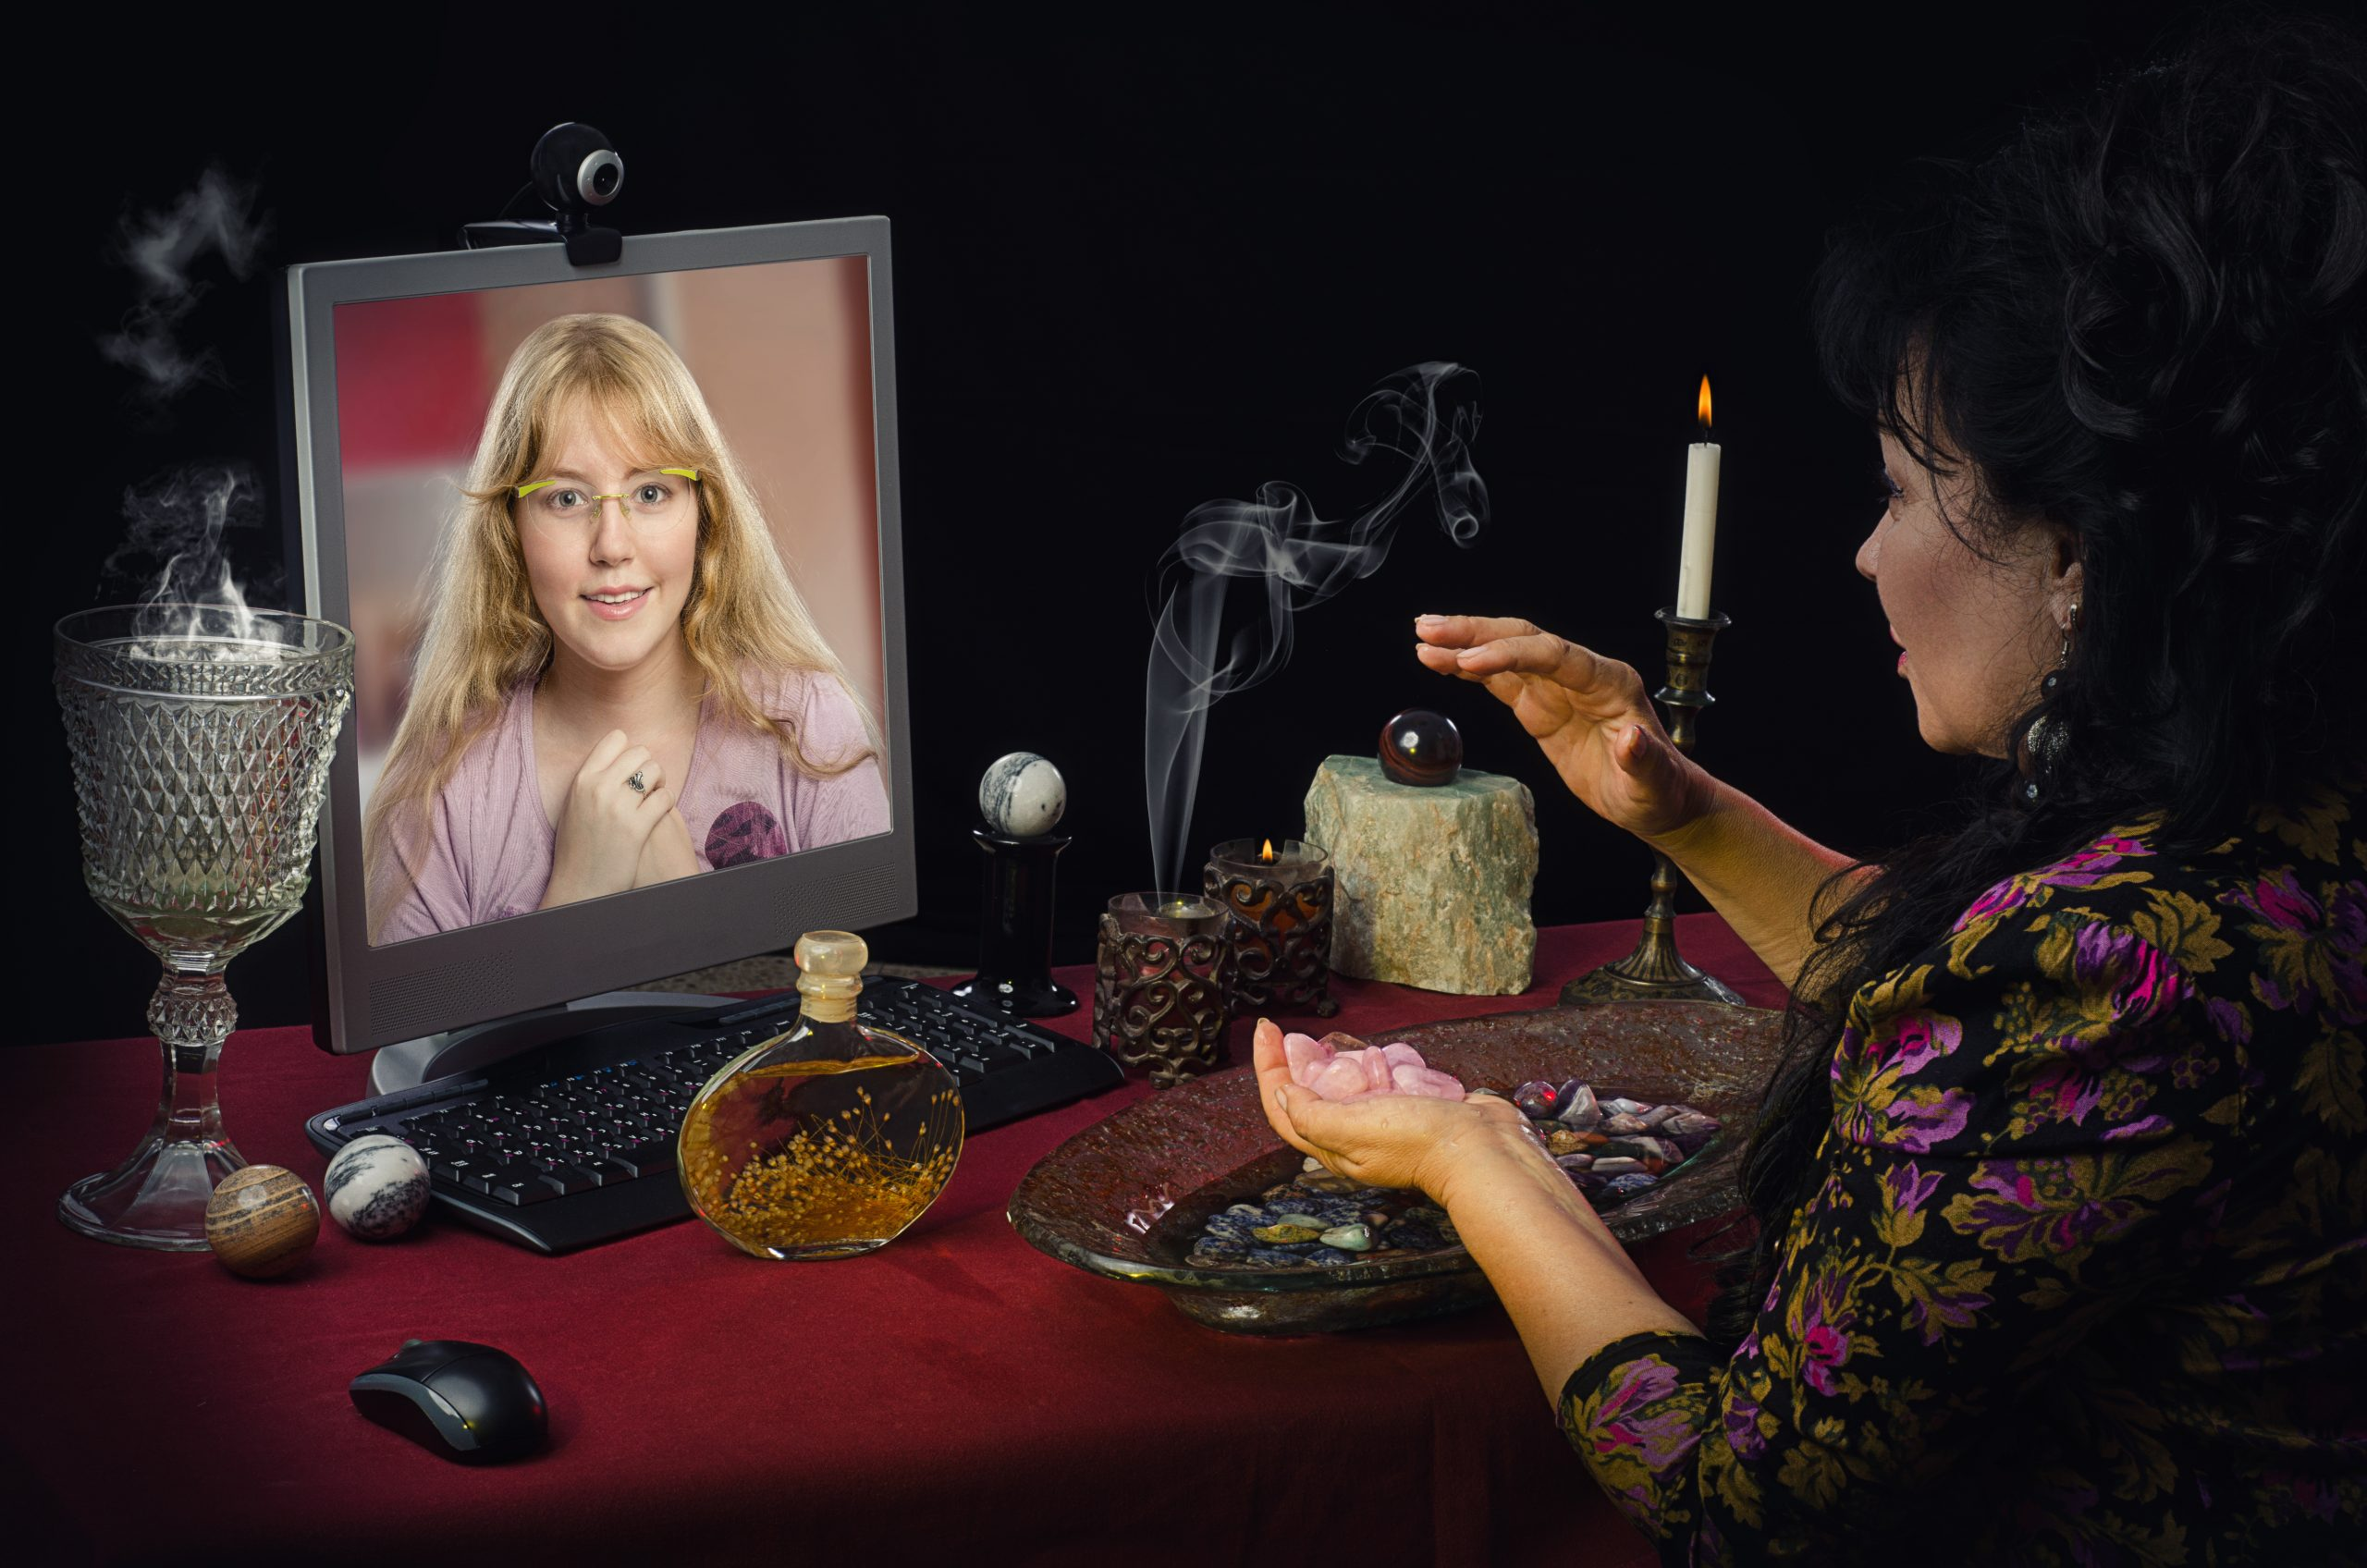 Psychic performing video reading